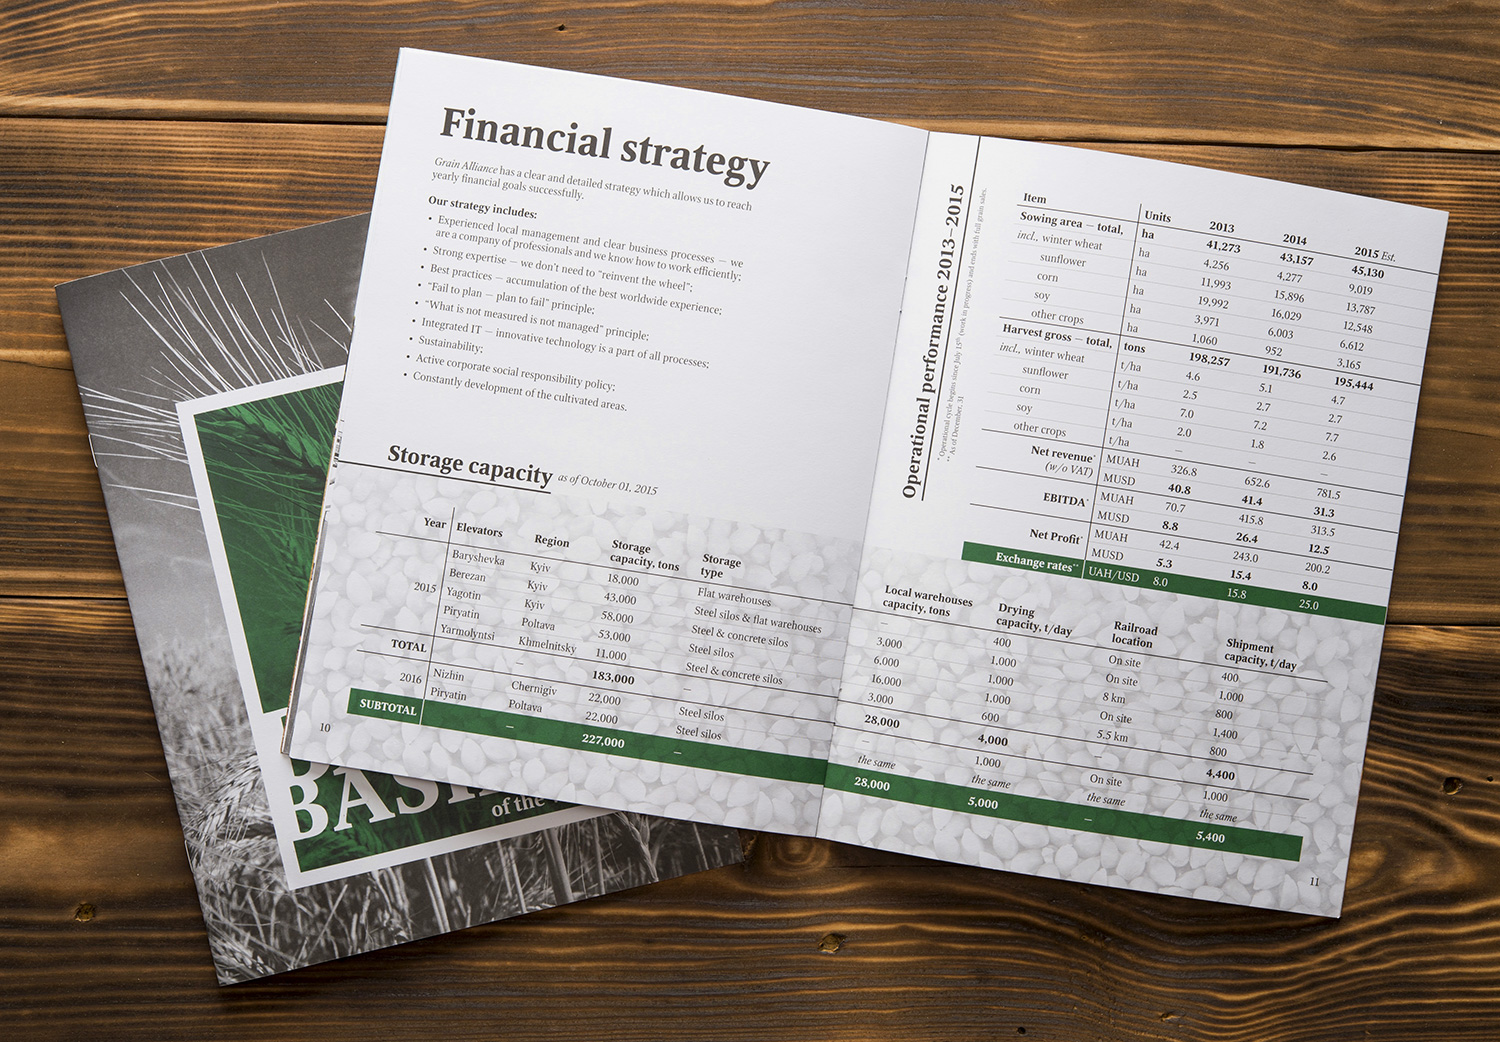 Brochure of Grain Alliance, agricultural producer. Financial strategy. Storage capacity.